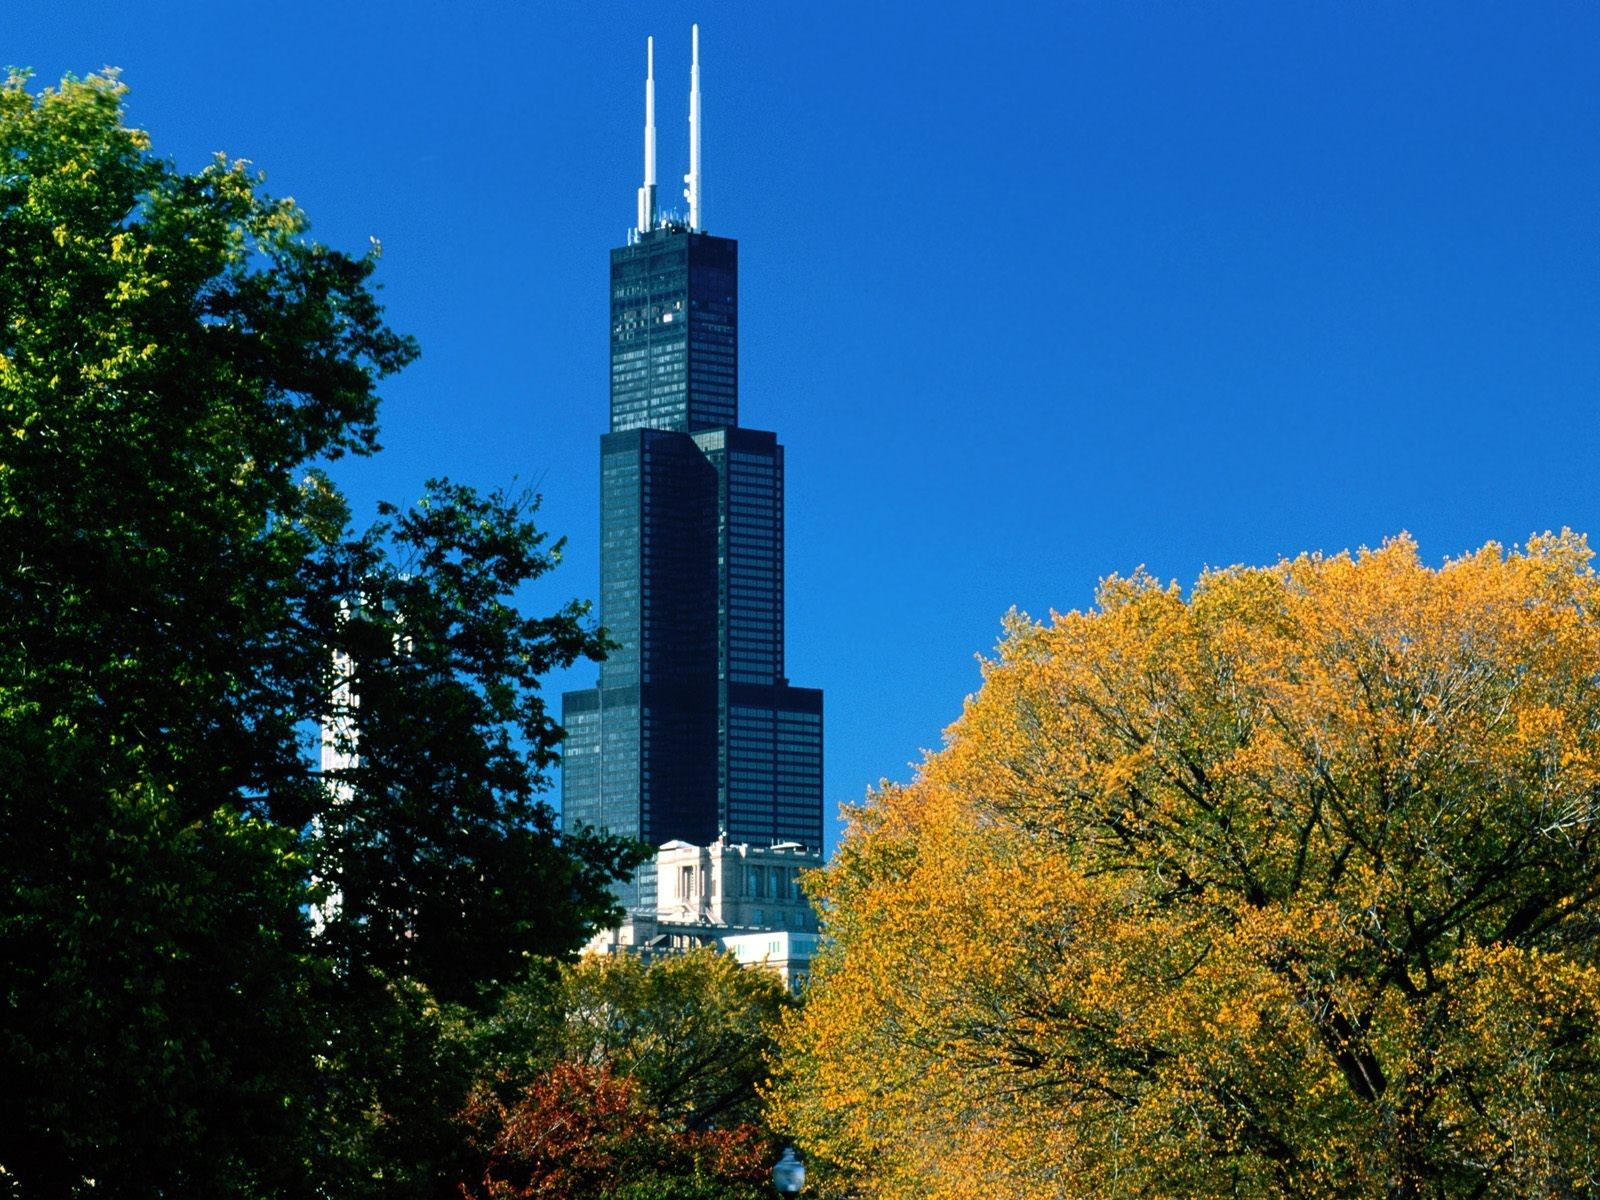 HD Wall Paper 1920X1080 Chicago | Chicago Sears Tower Illinois Fresh New HD Wallpaper Best Quality | HD ...